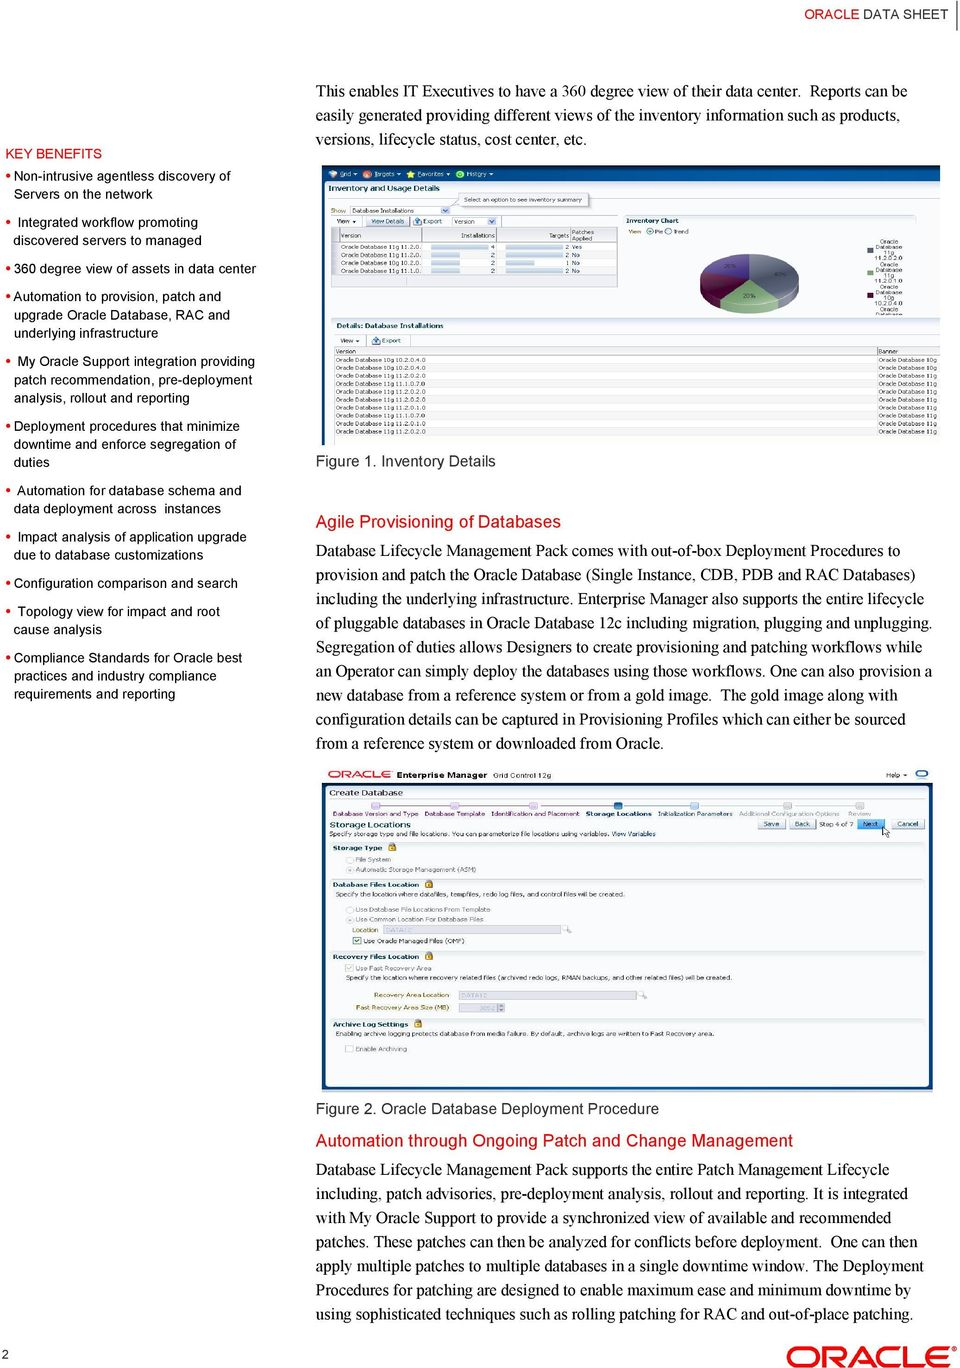 Integrated workflow promoting discovered servers to managed 360 degree view of assets in data center Automation to provision, patch and upgrade Oracle Database, RAC and underlying infrastructure My